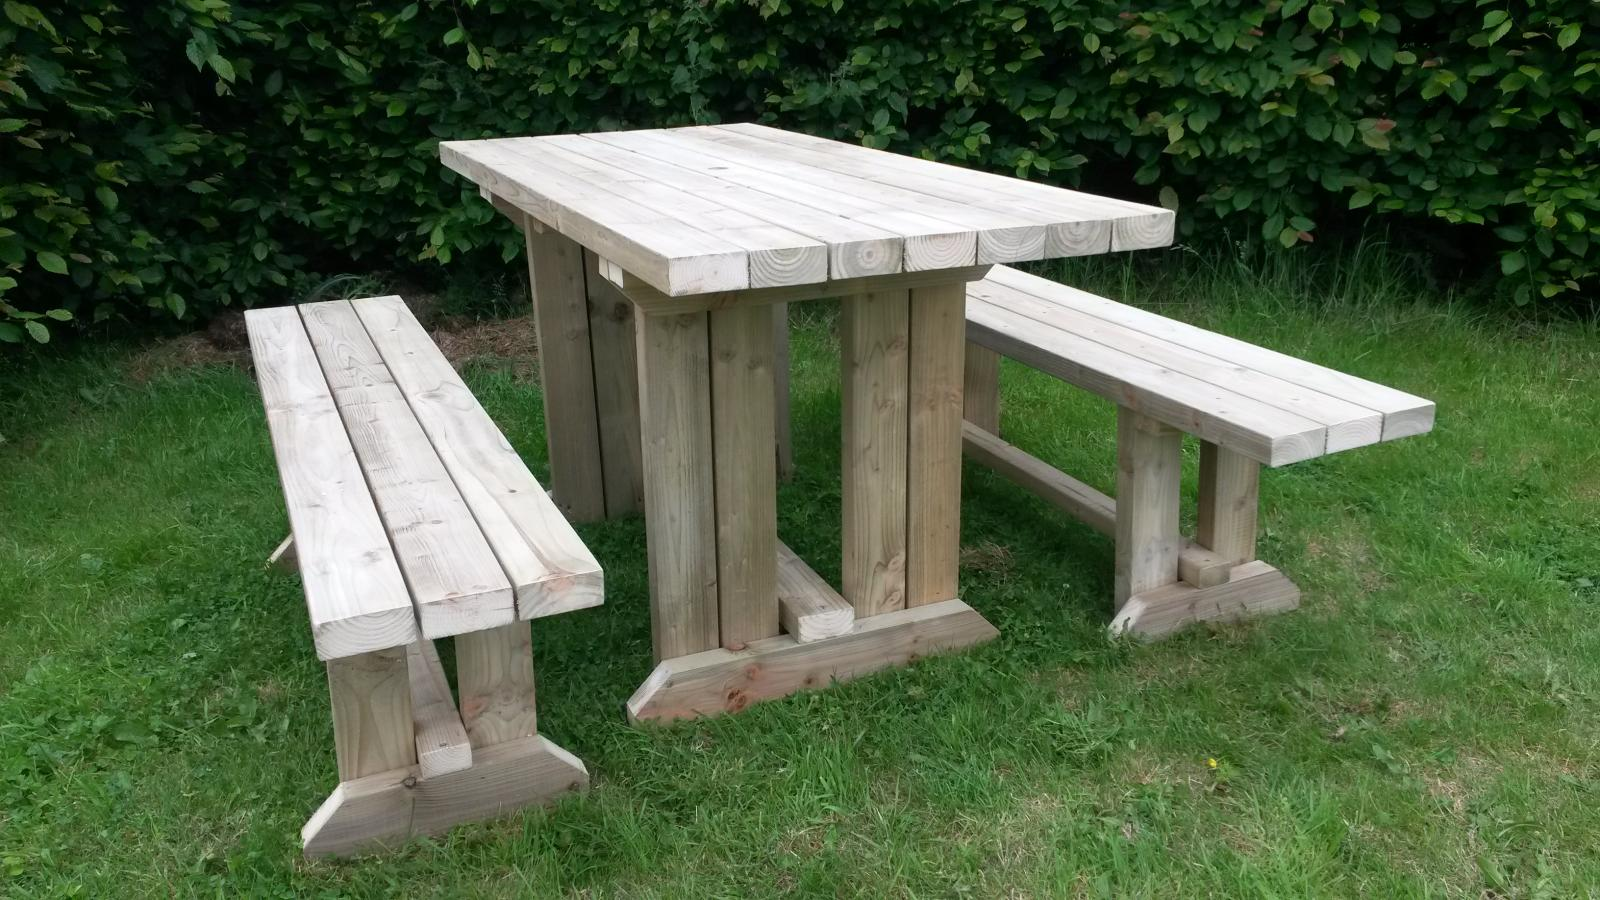 Garden Walk Dining: Wooden Pub Garden Hot Tub Kitchen Dining Table Walk In